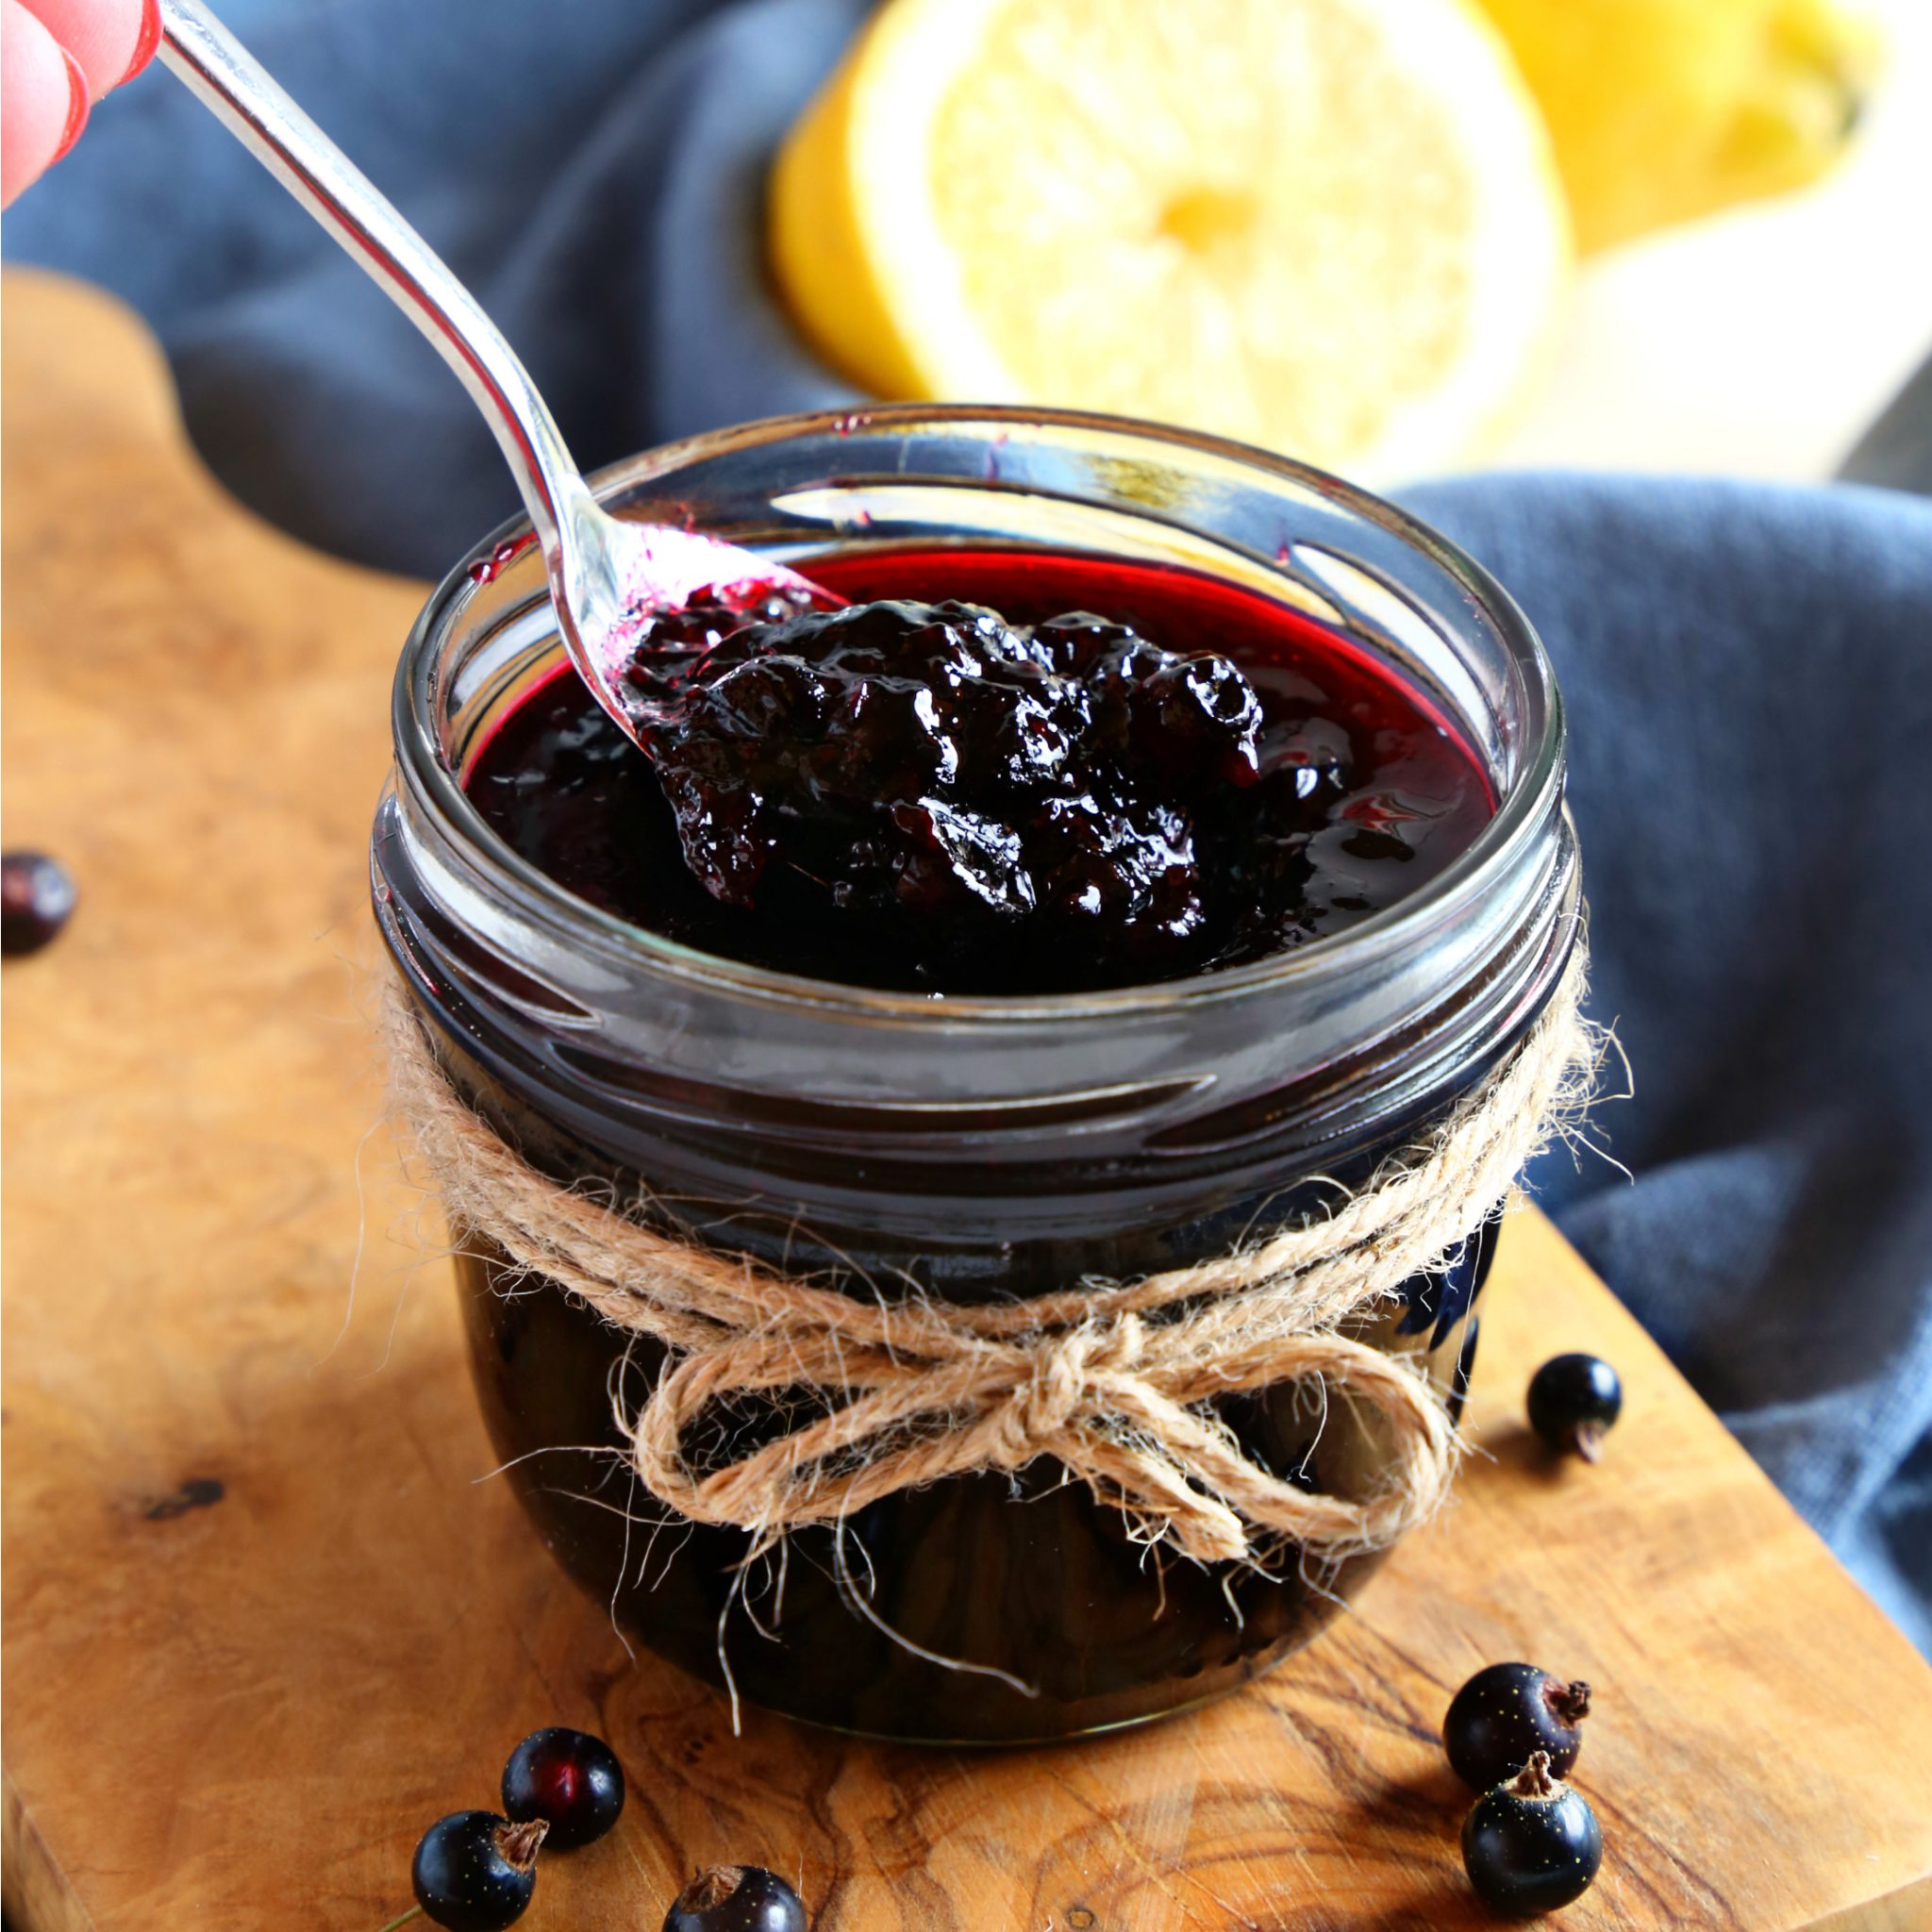 How to cook currant jam 55